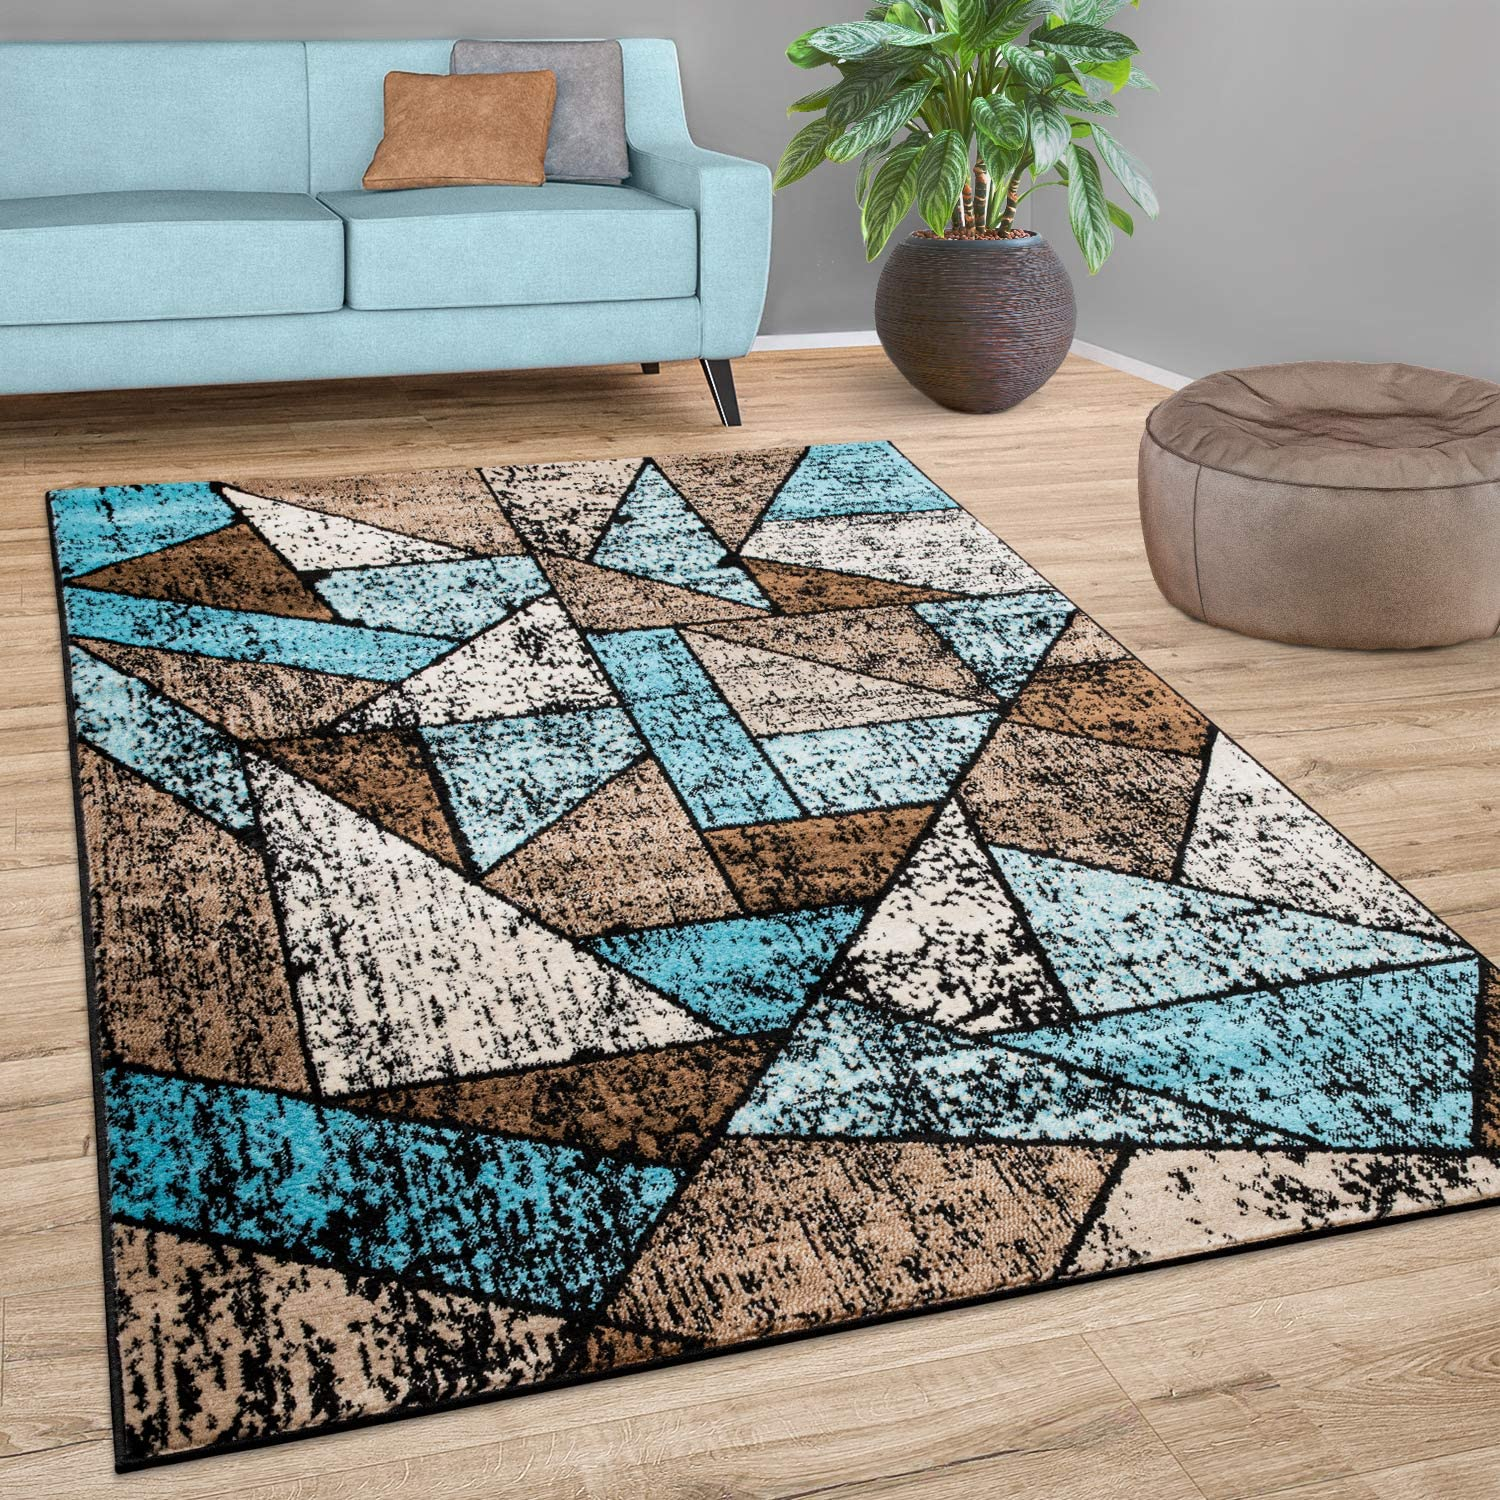 "Brown Blue Area Rug for Living Room with Modern Geometric Pattern - Colorful Design, Size:5'3"" x 7'3"""